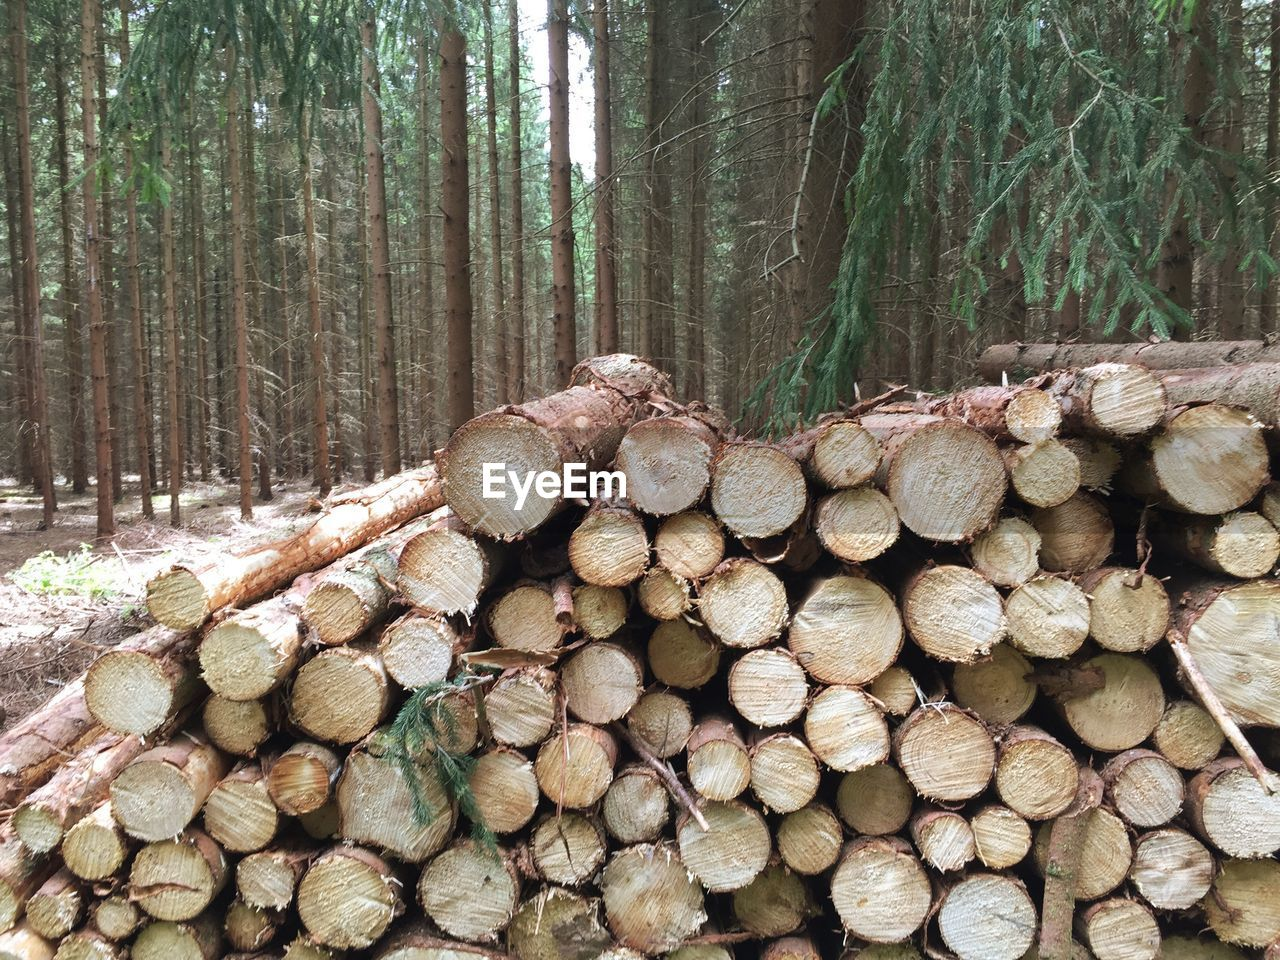 Close-Up Of Logs Against Trees In The Forest